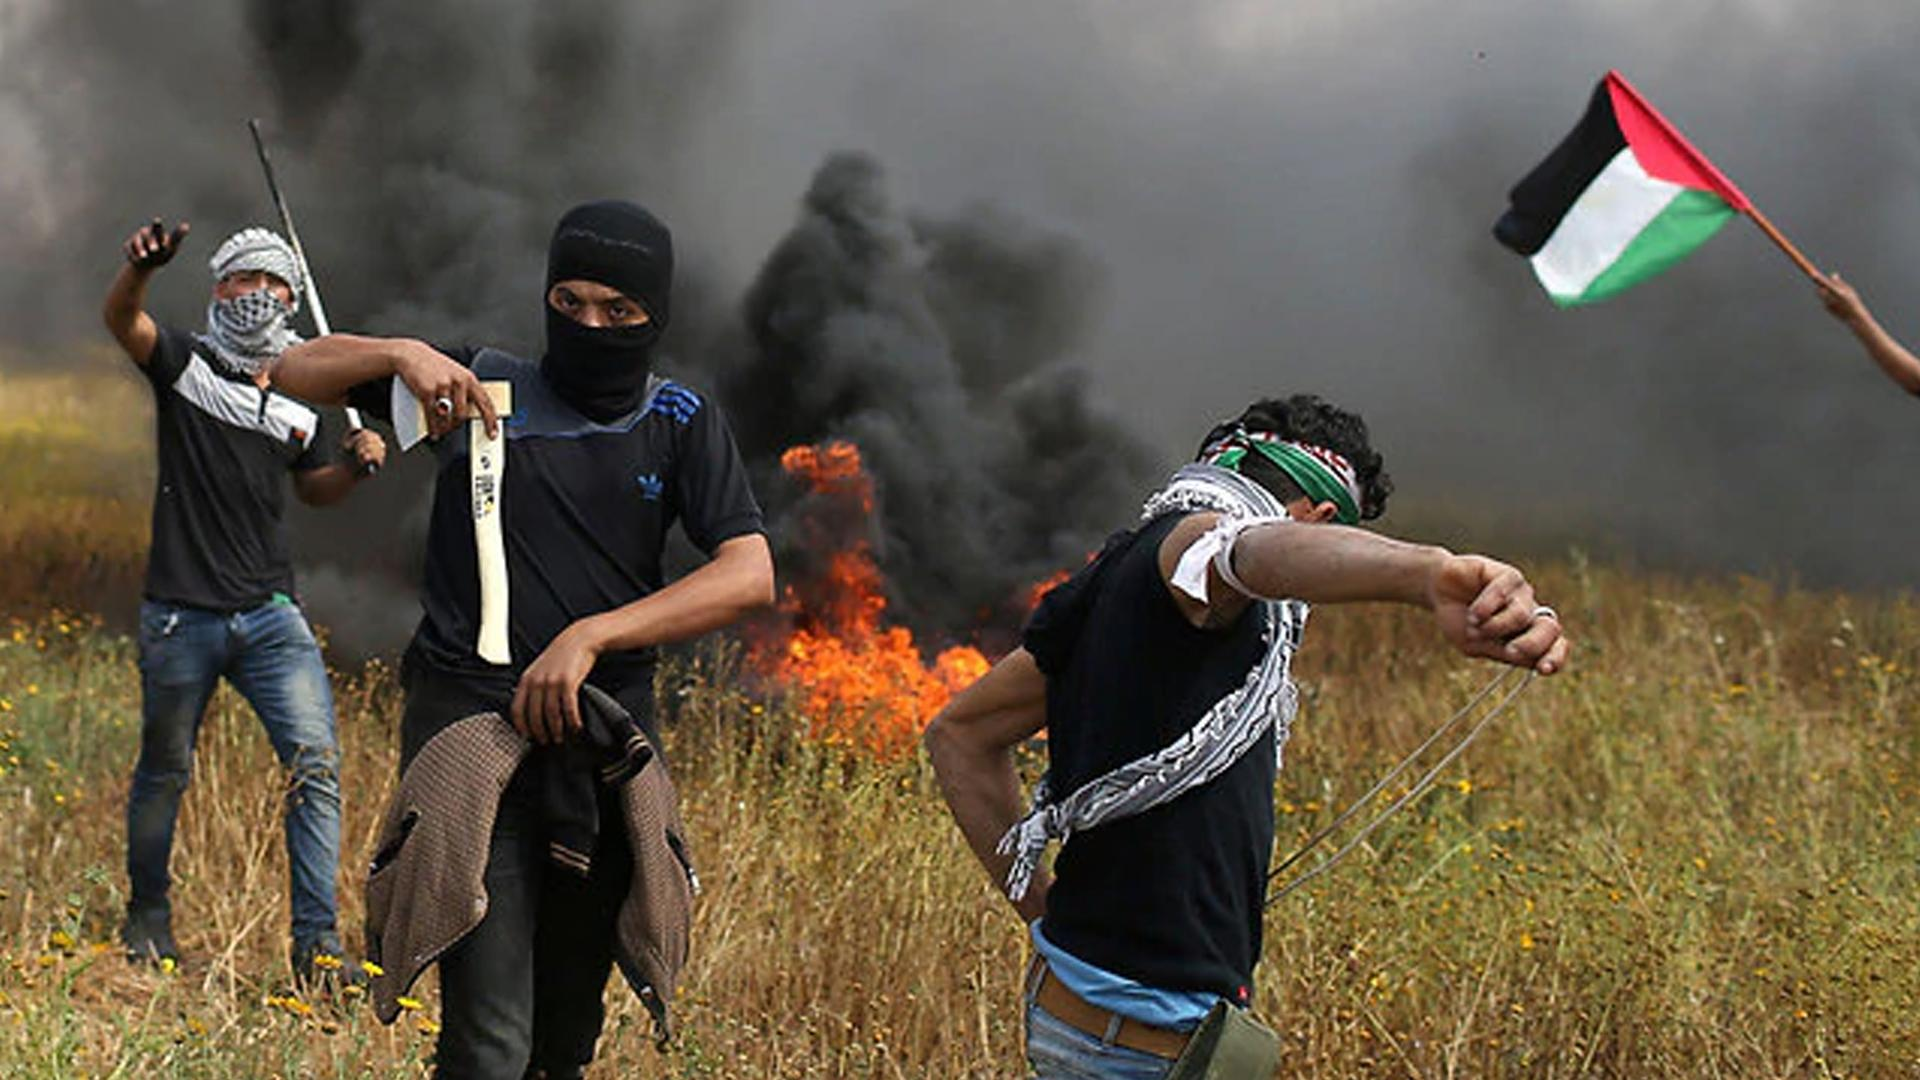 The violent riots on the Gaza border